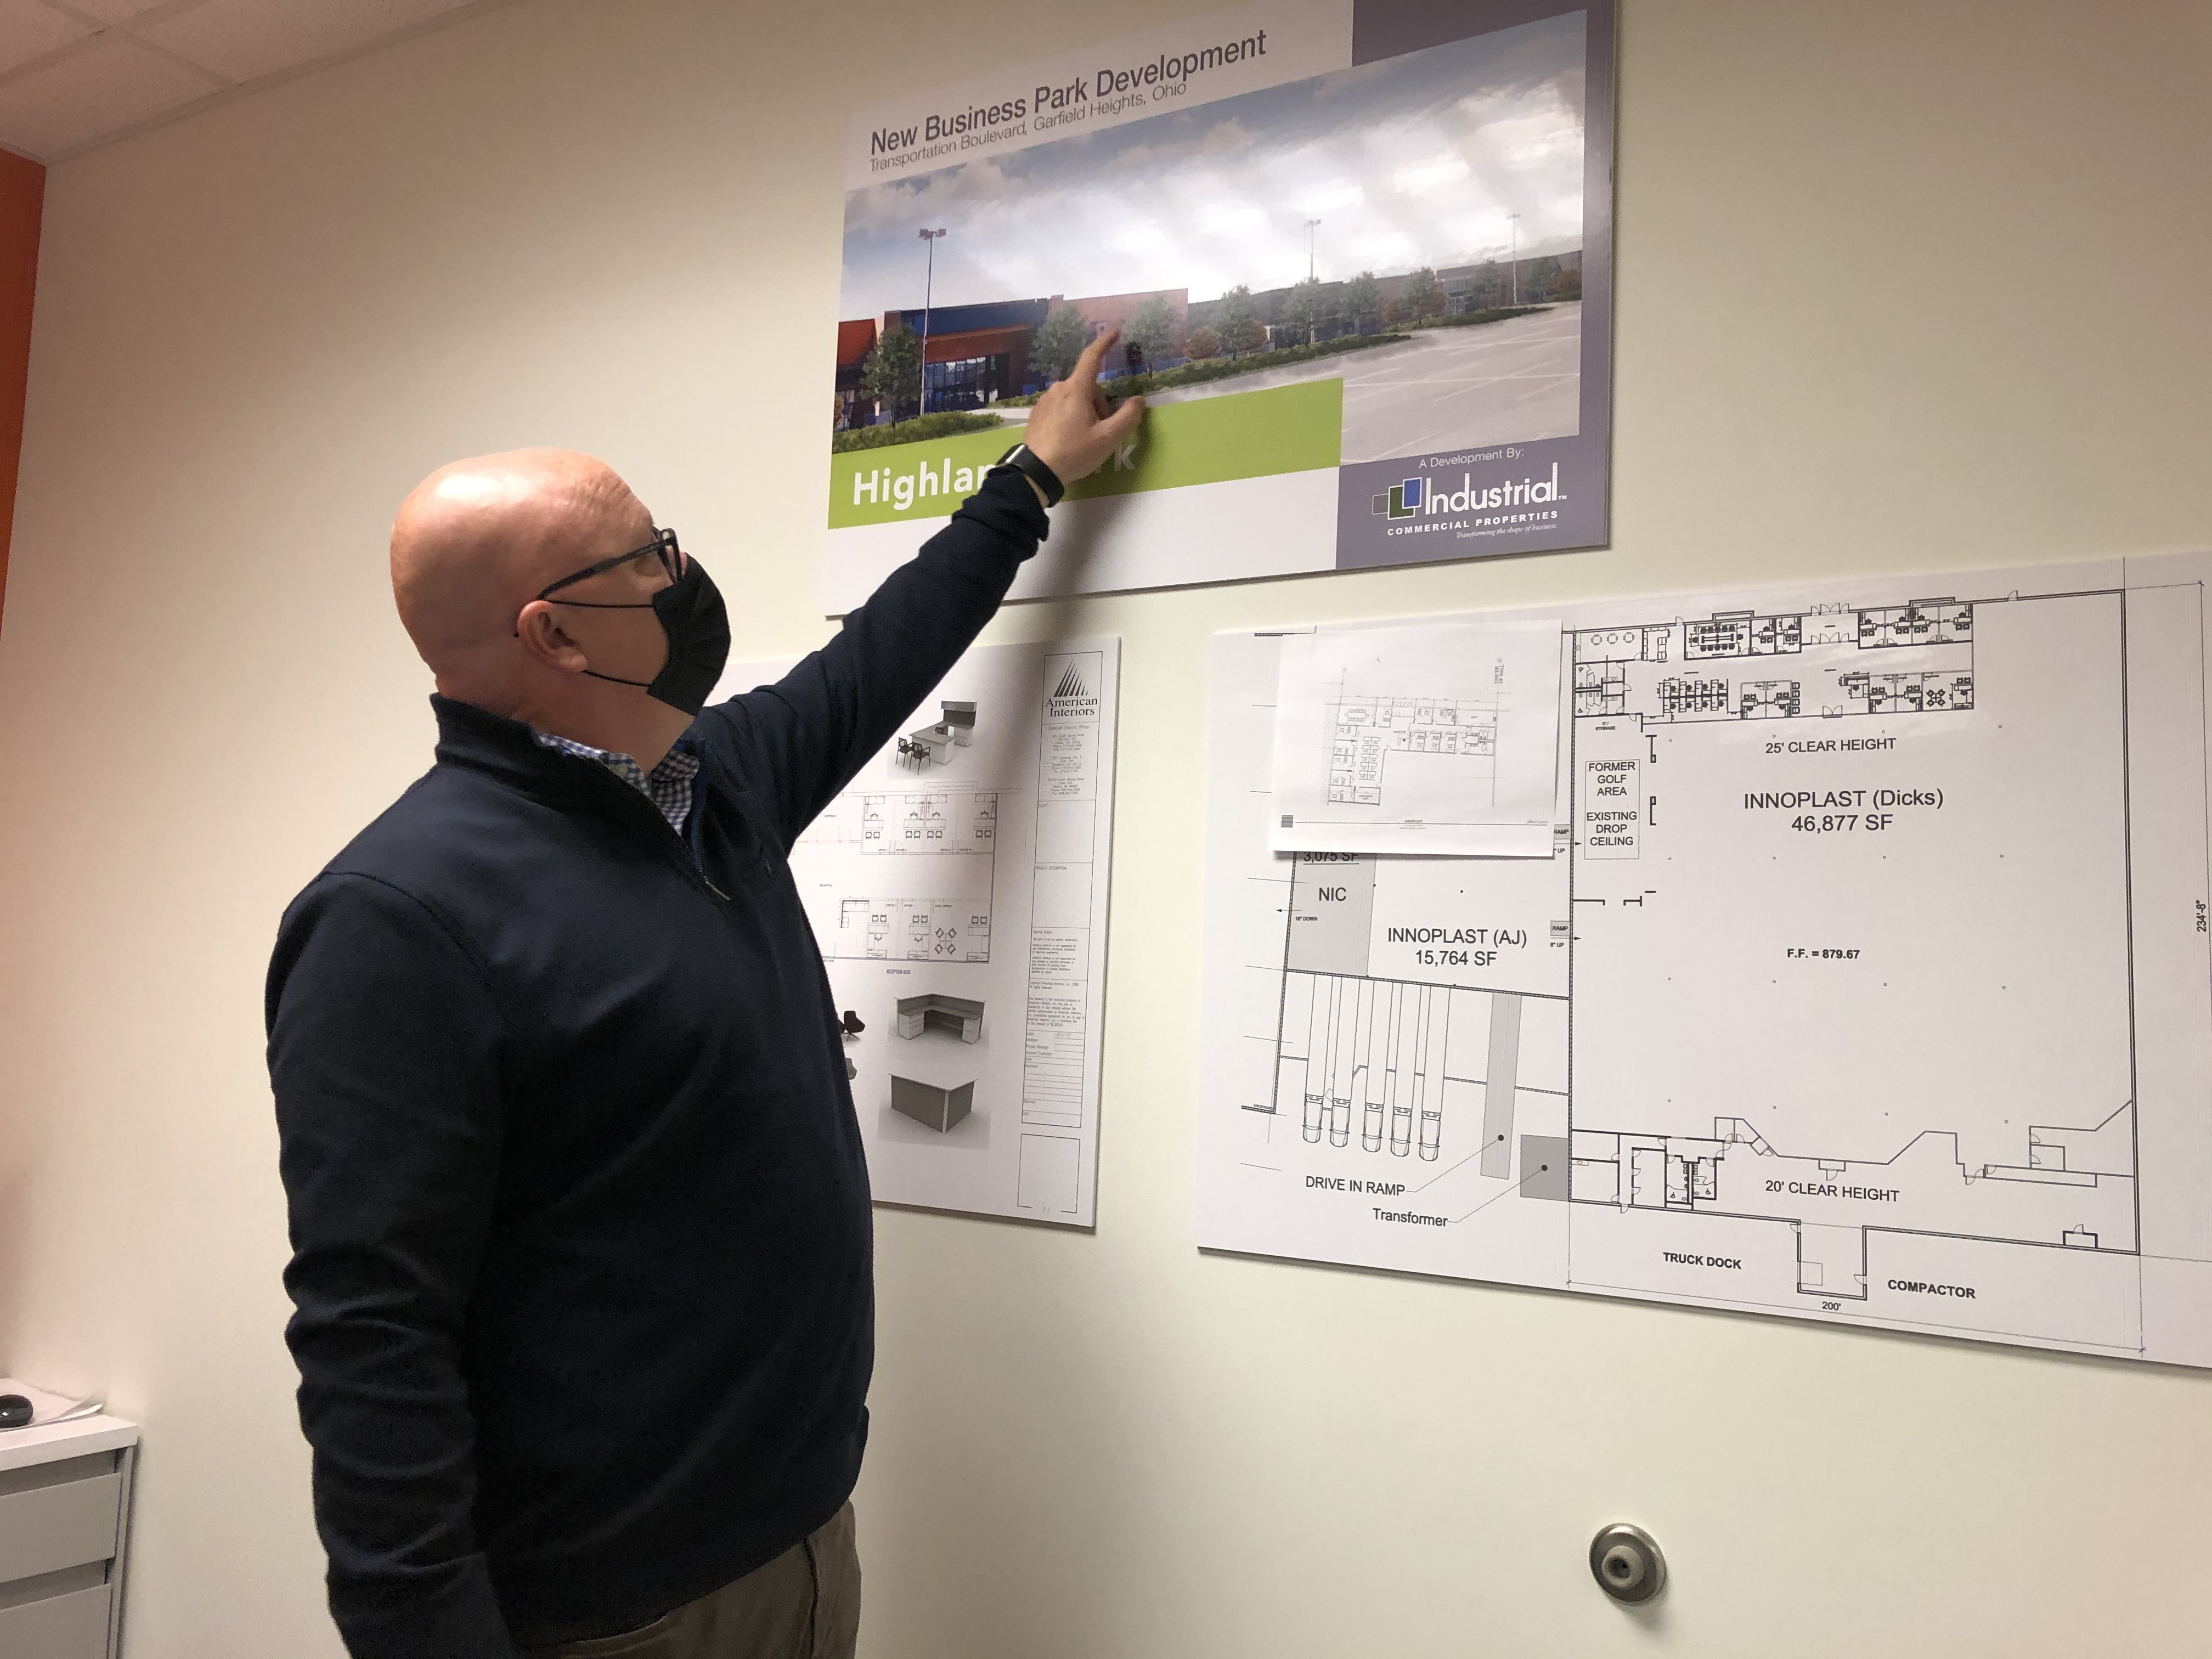 Gary Bowling pointing out the location of the new Innoplast headquarters on a digital rendering.